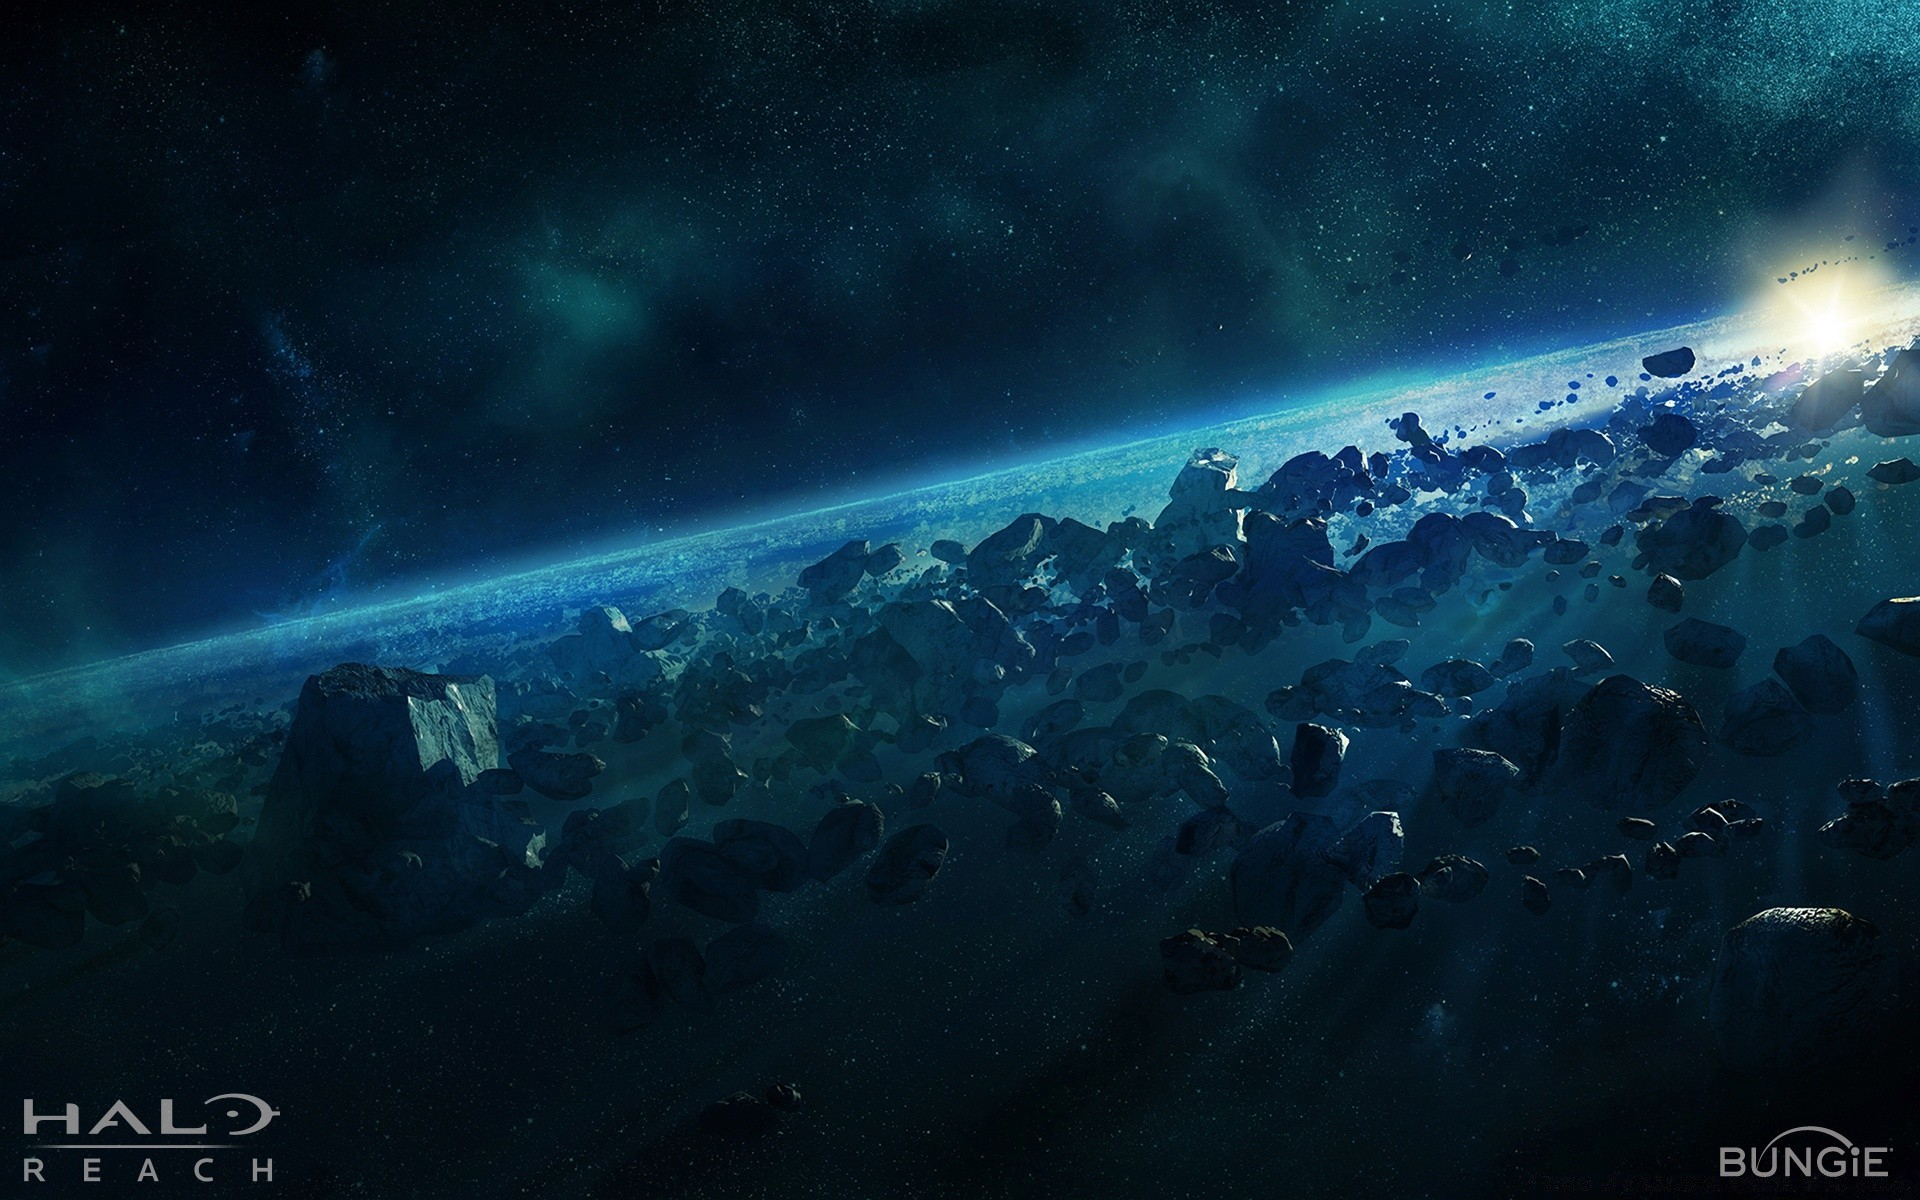 Halo Reach, Asteroid - Android wallpapers